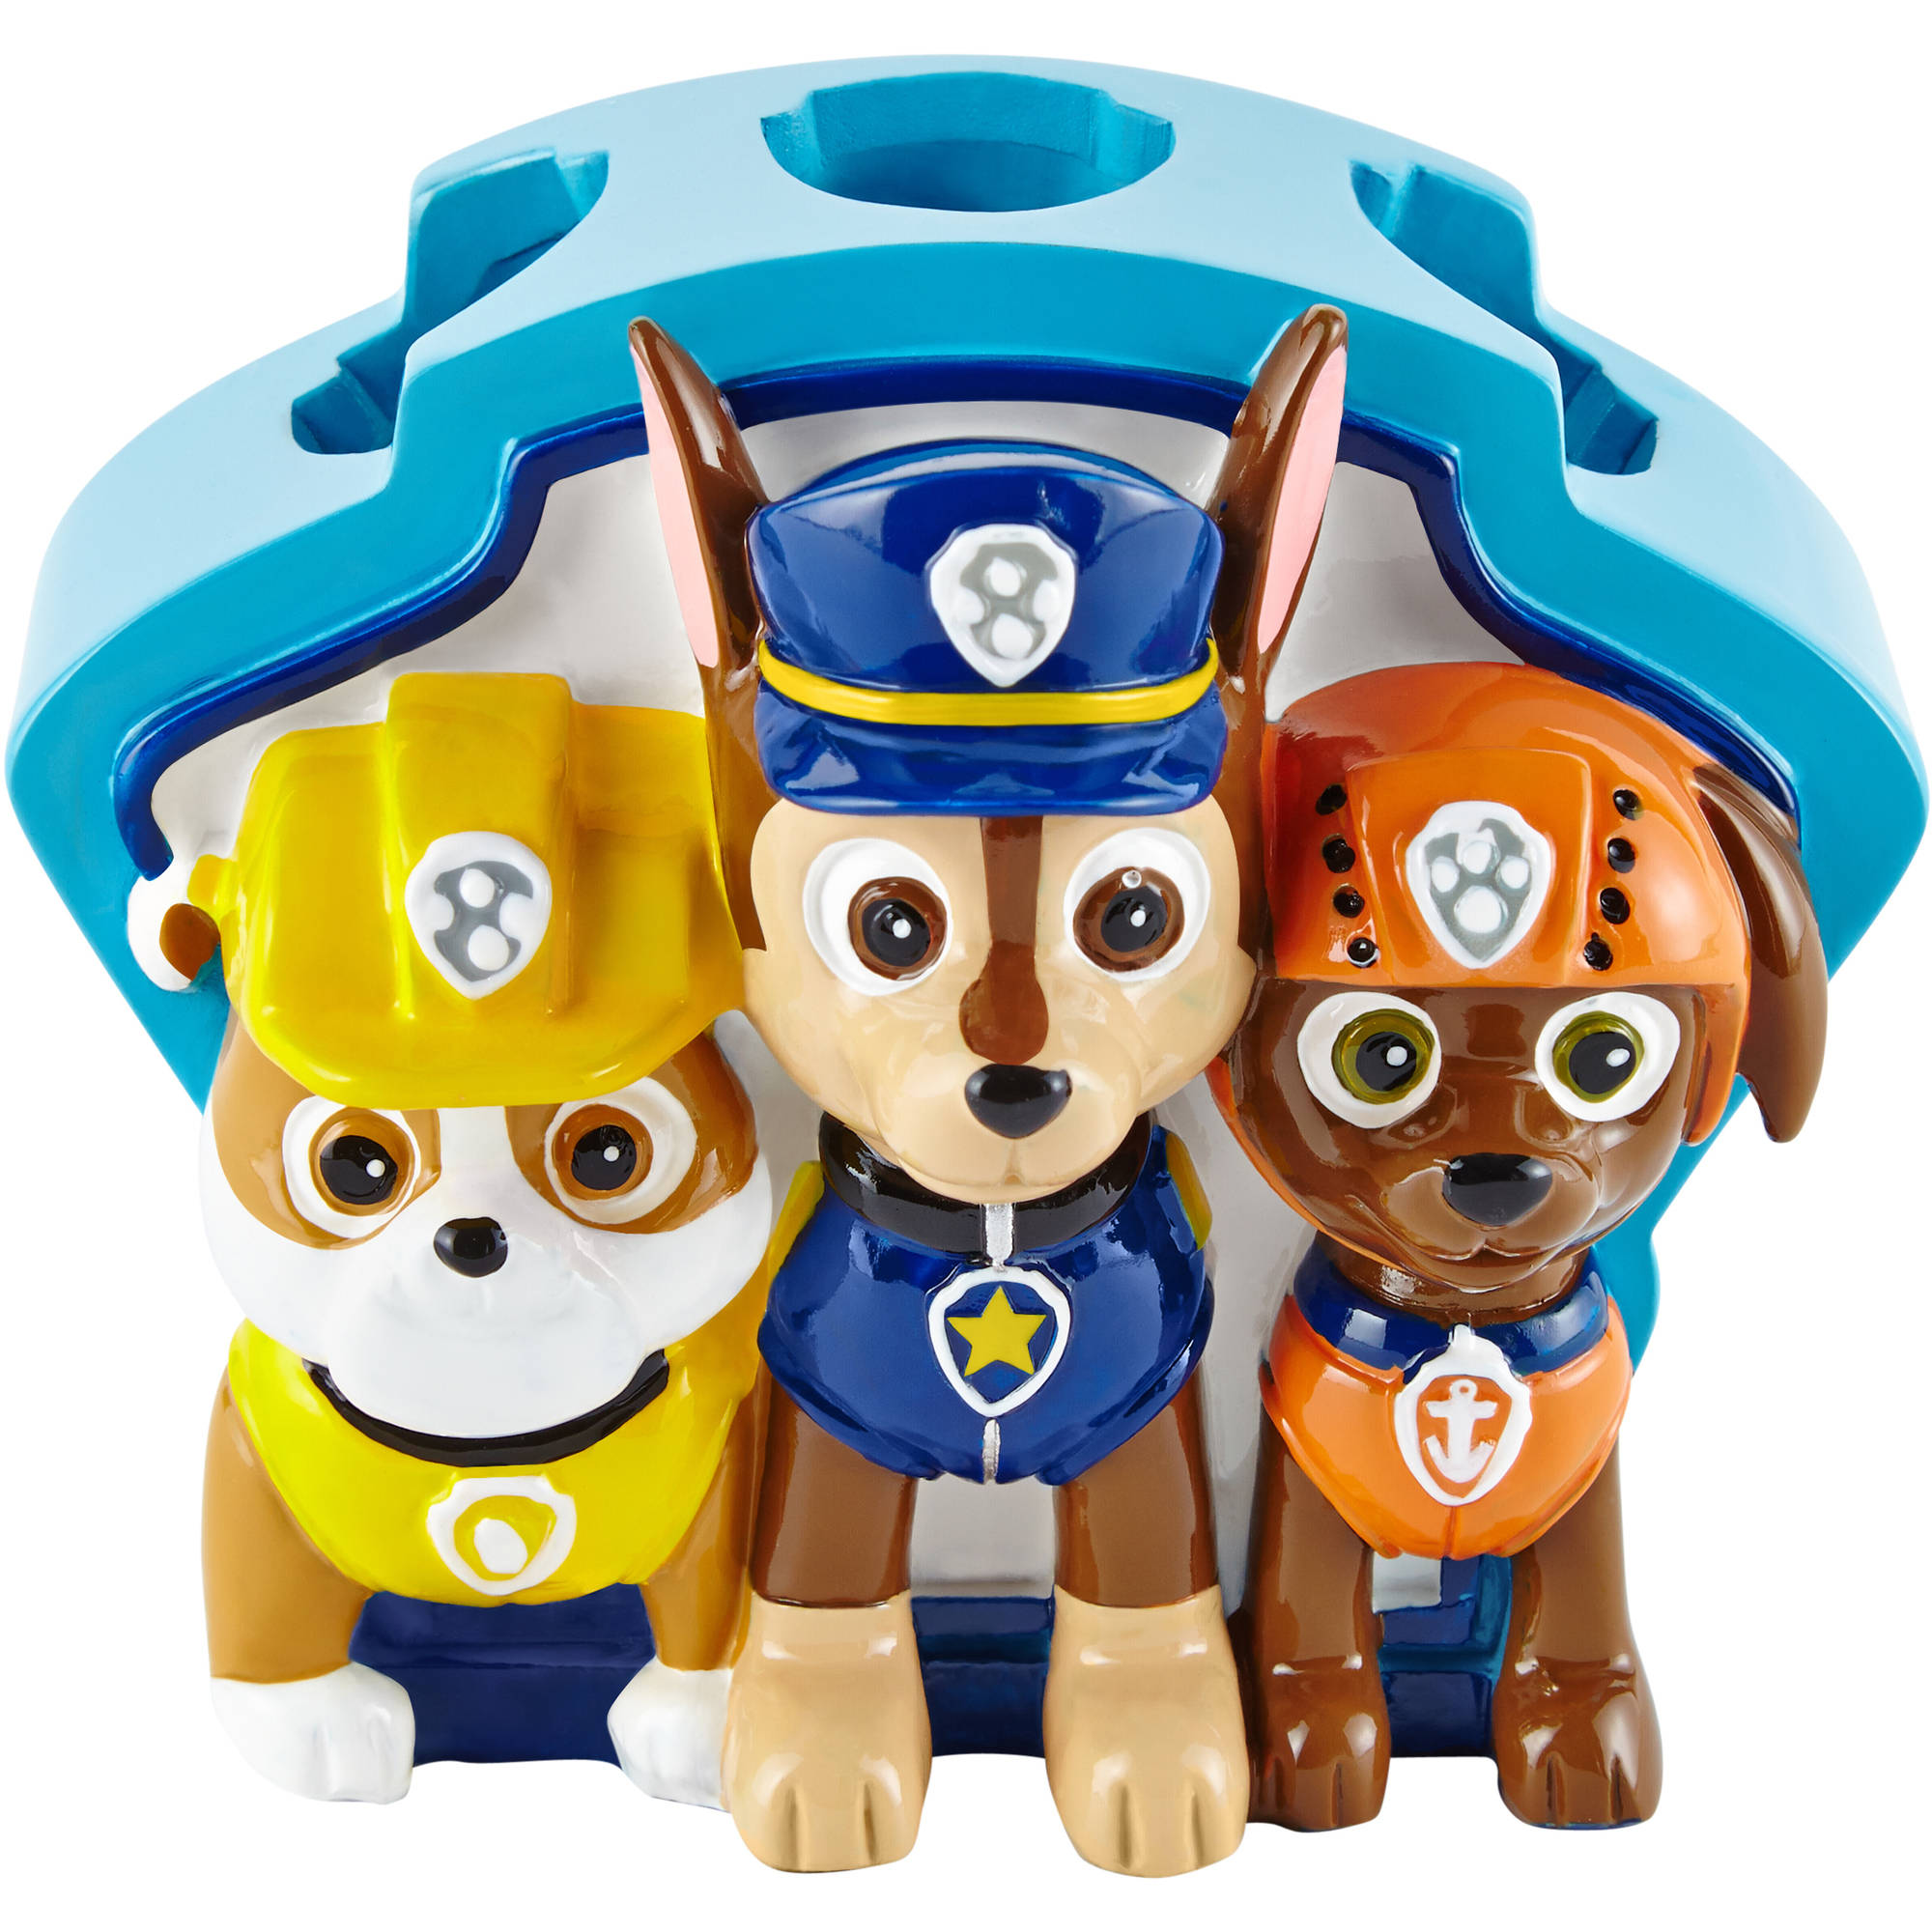 Nickelodeon Paw Patrol Toothbrush Holder